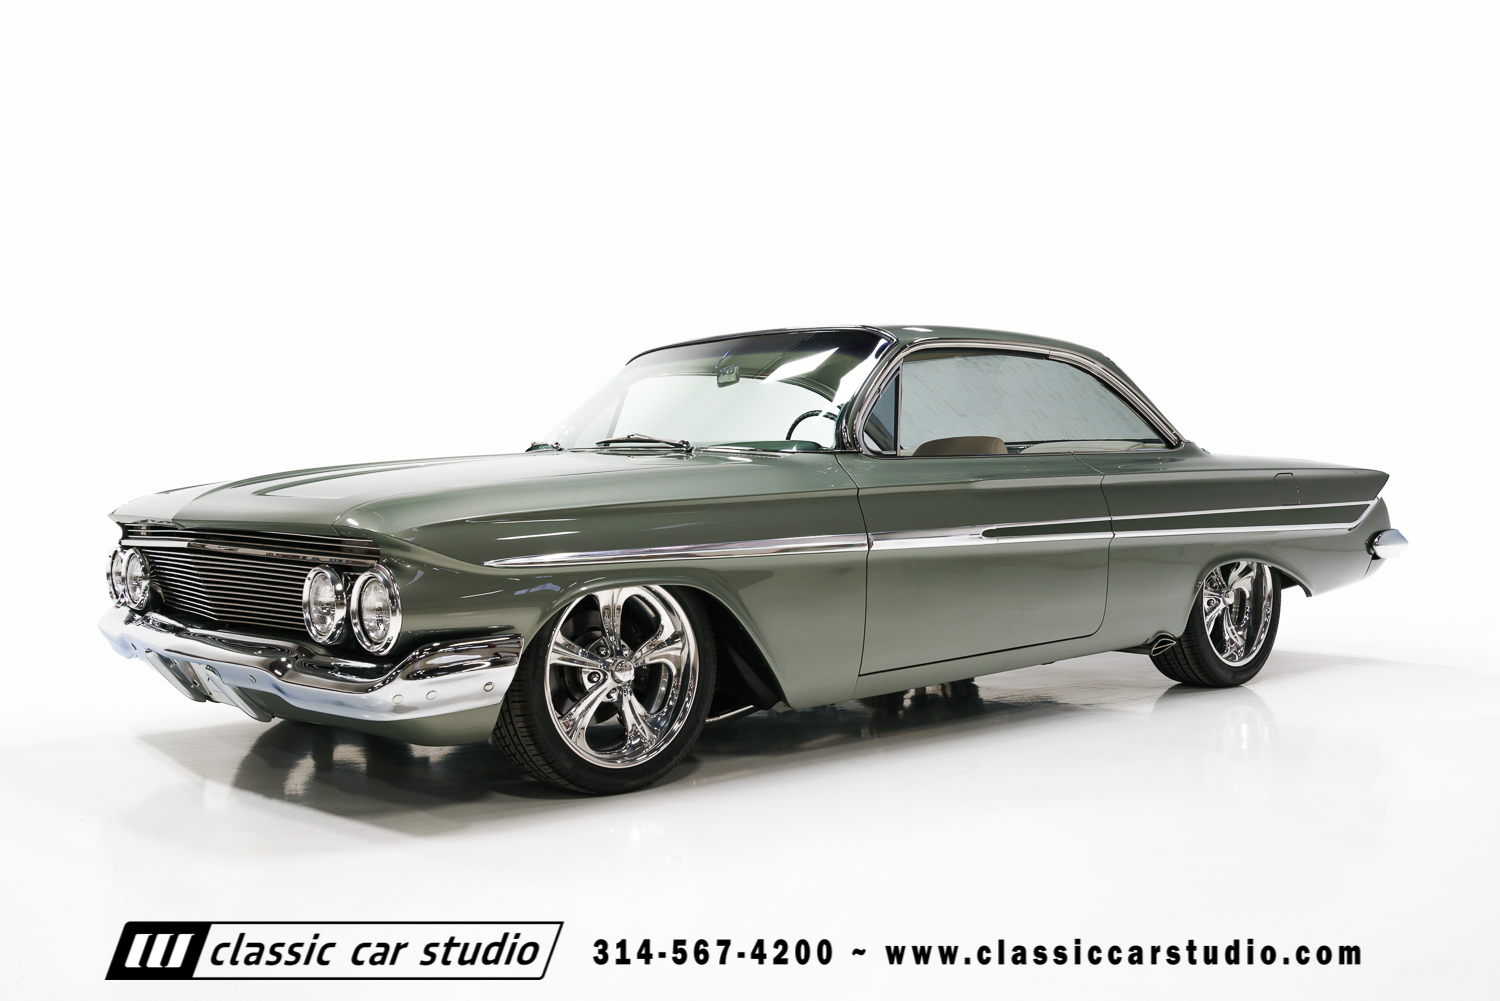 1961 chevrolet impala classic car studio. Black Bedroom Furniture Sets. Home Design Ideas